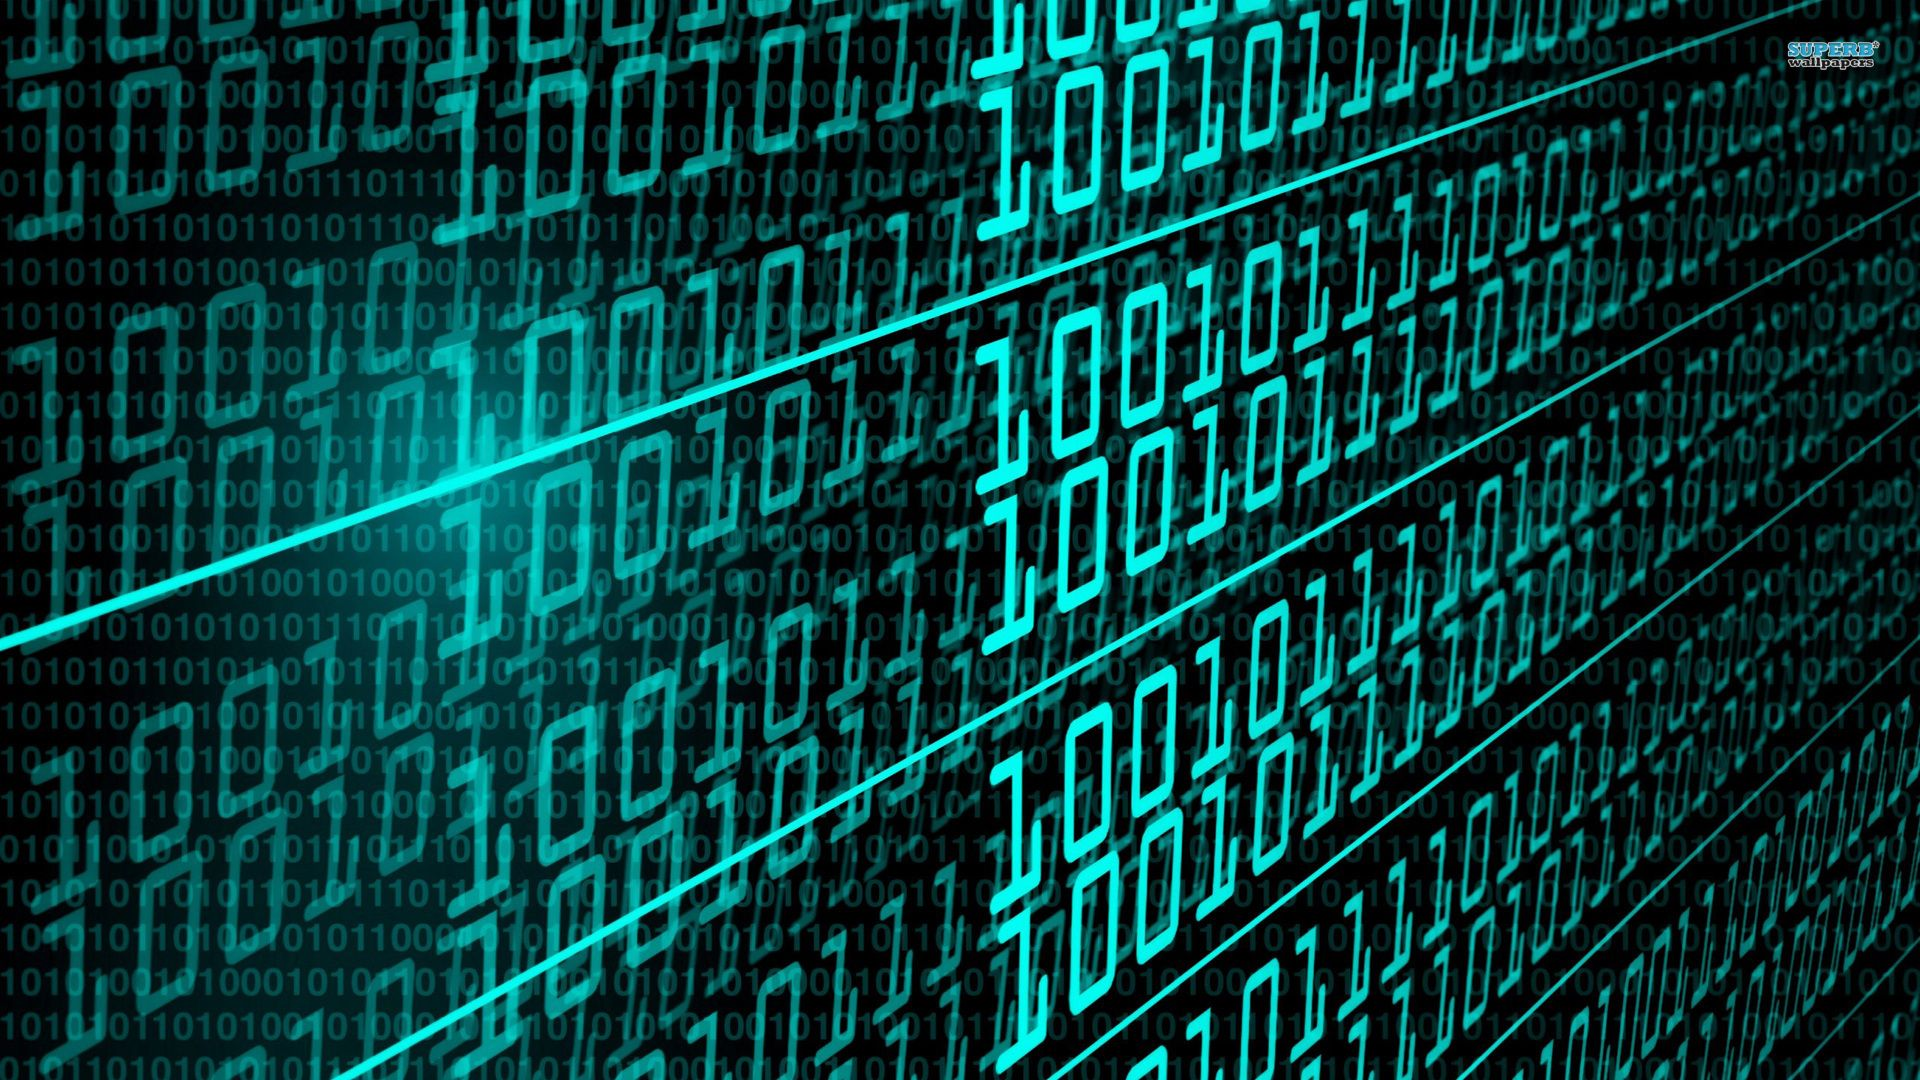 World information technology background images with binary